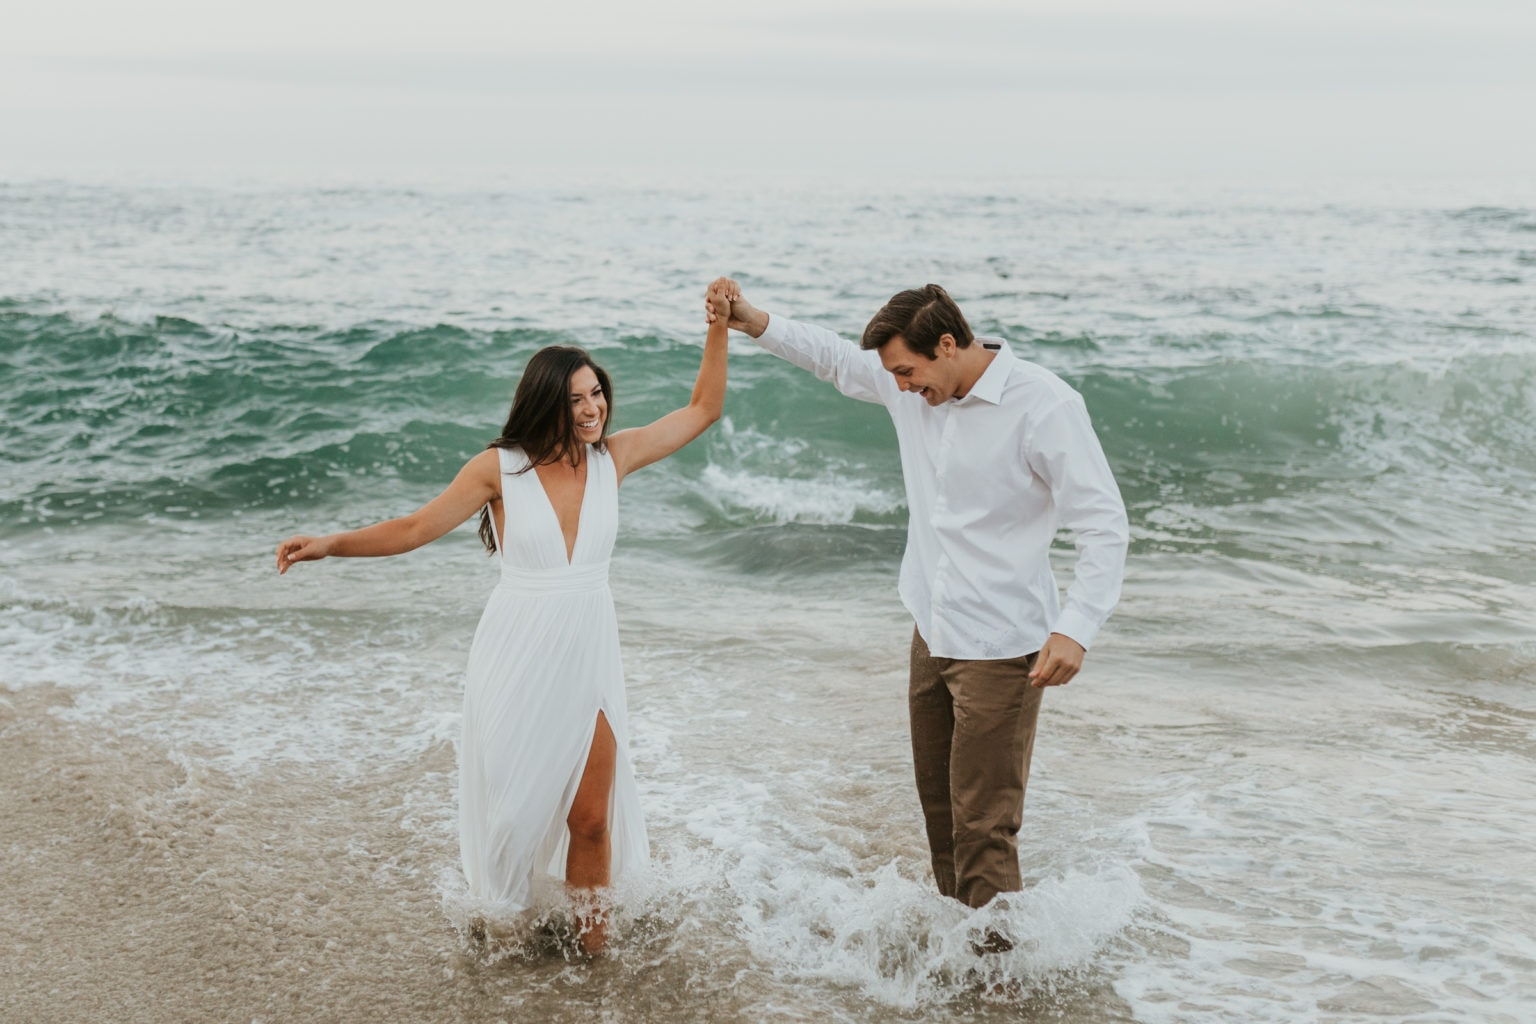 A bride and groom playing in the water on their elopement day.